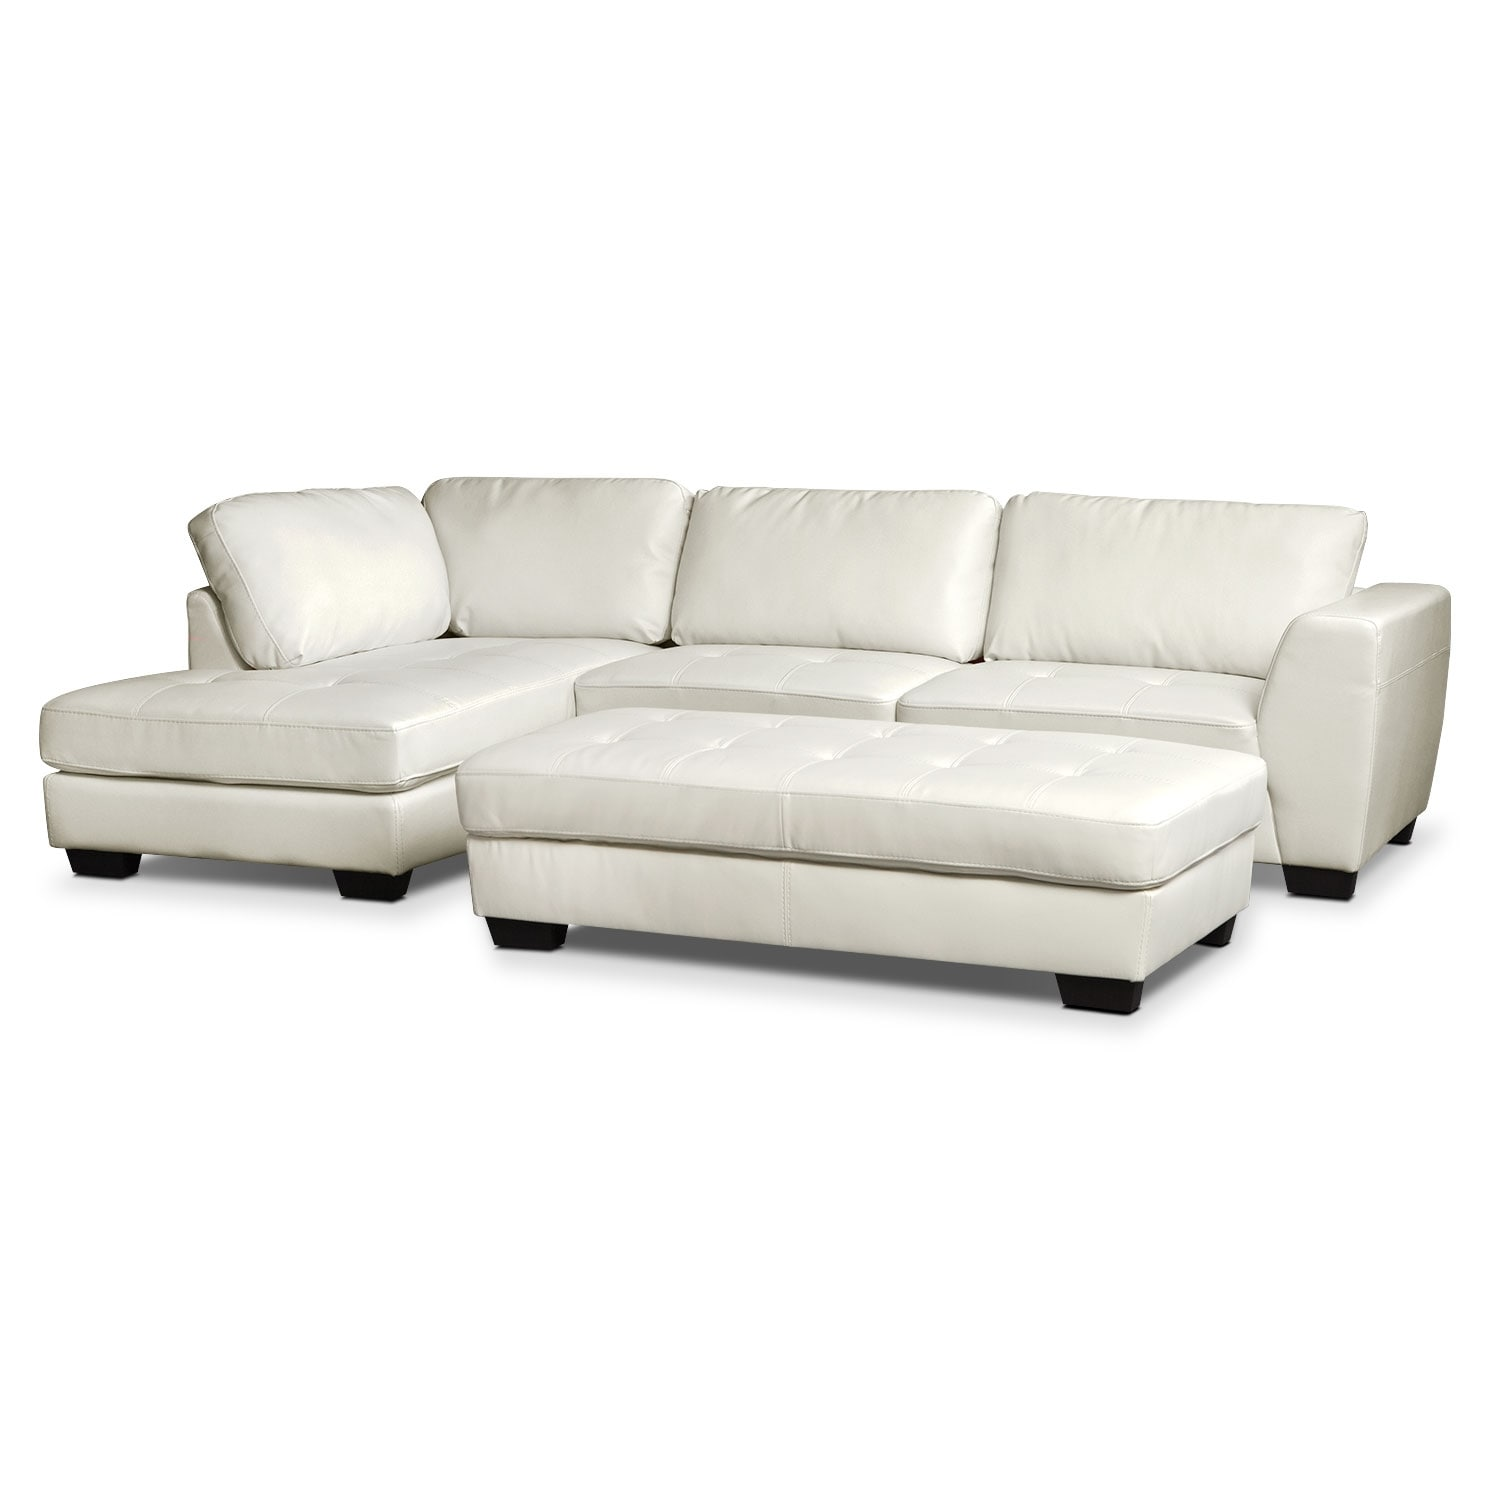 Ciera White 2-Piece Left-Facing Sectional and Cocktail Ottoman